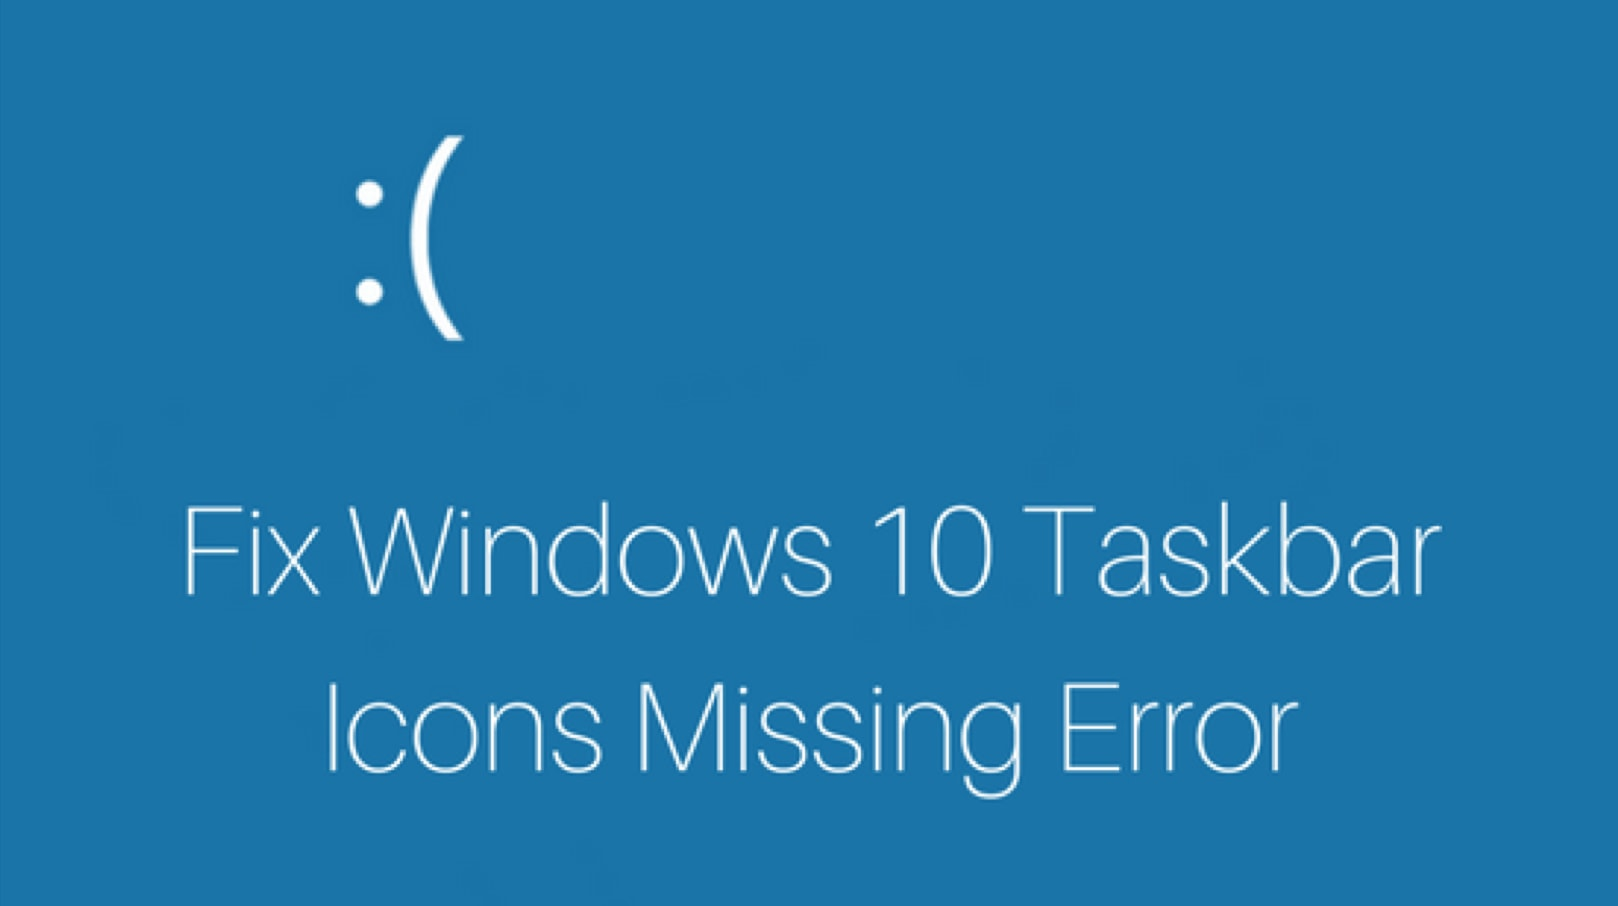 How To Fix Windows 10 Taskbar Icons Missing or Not Showing Error